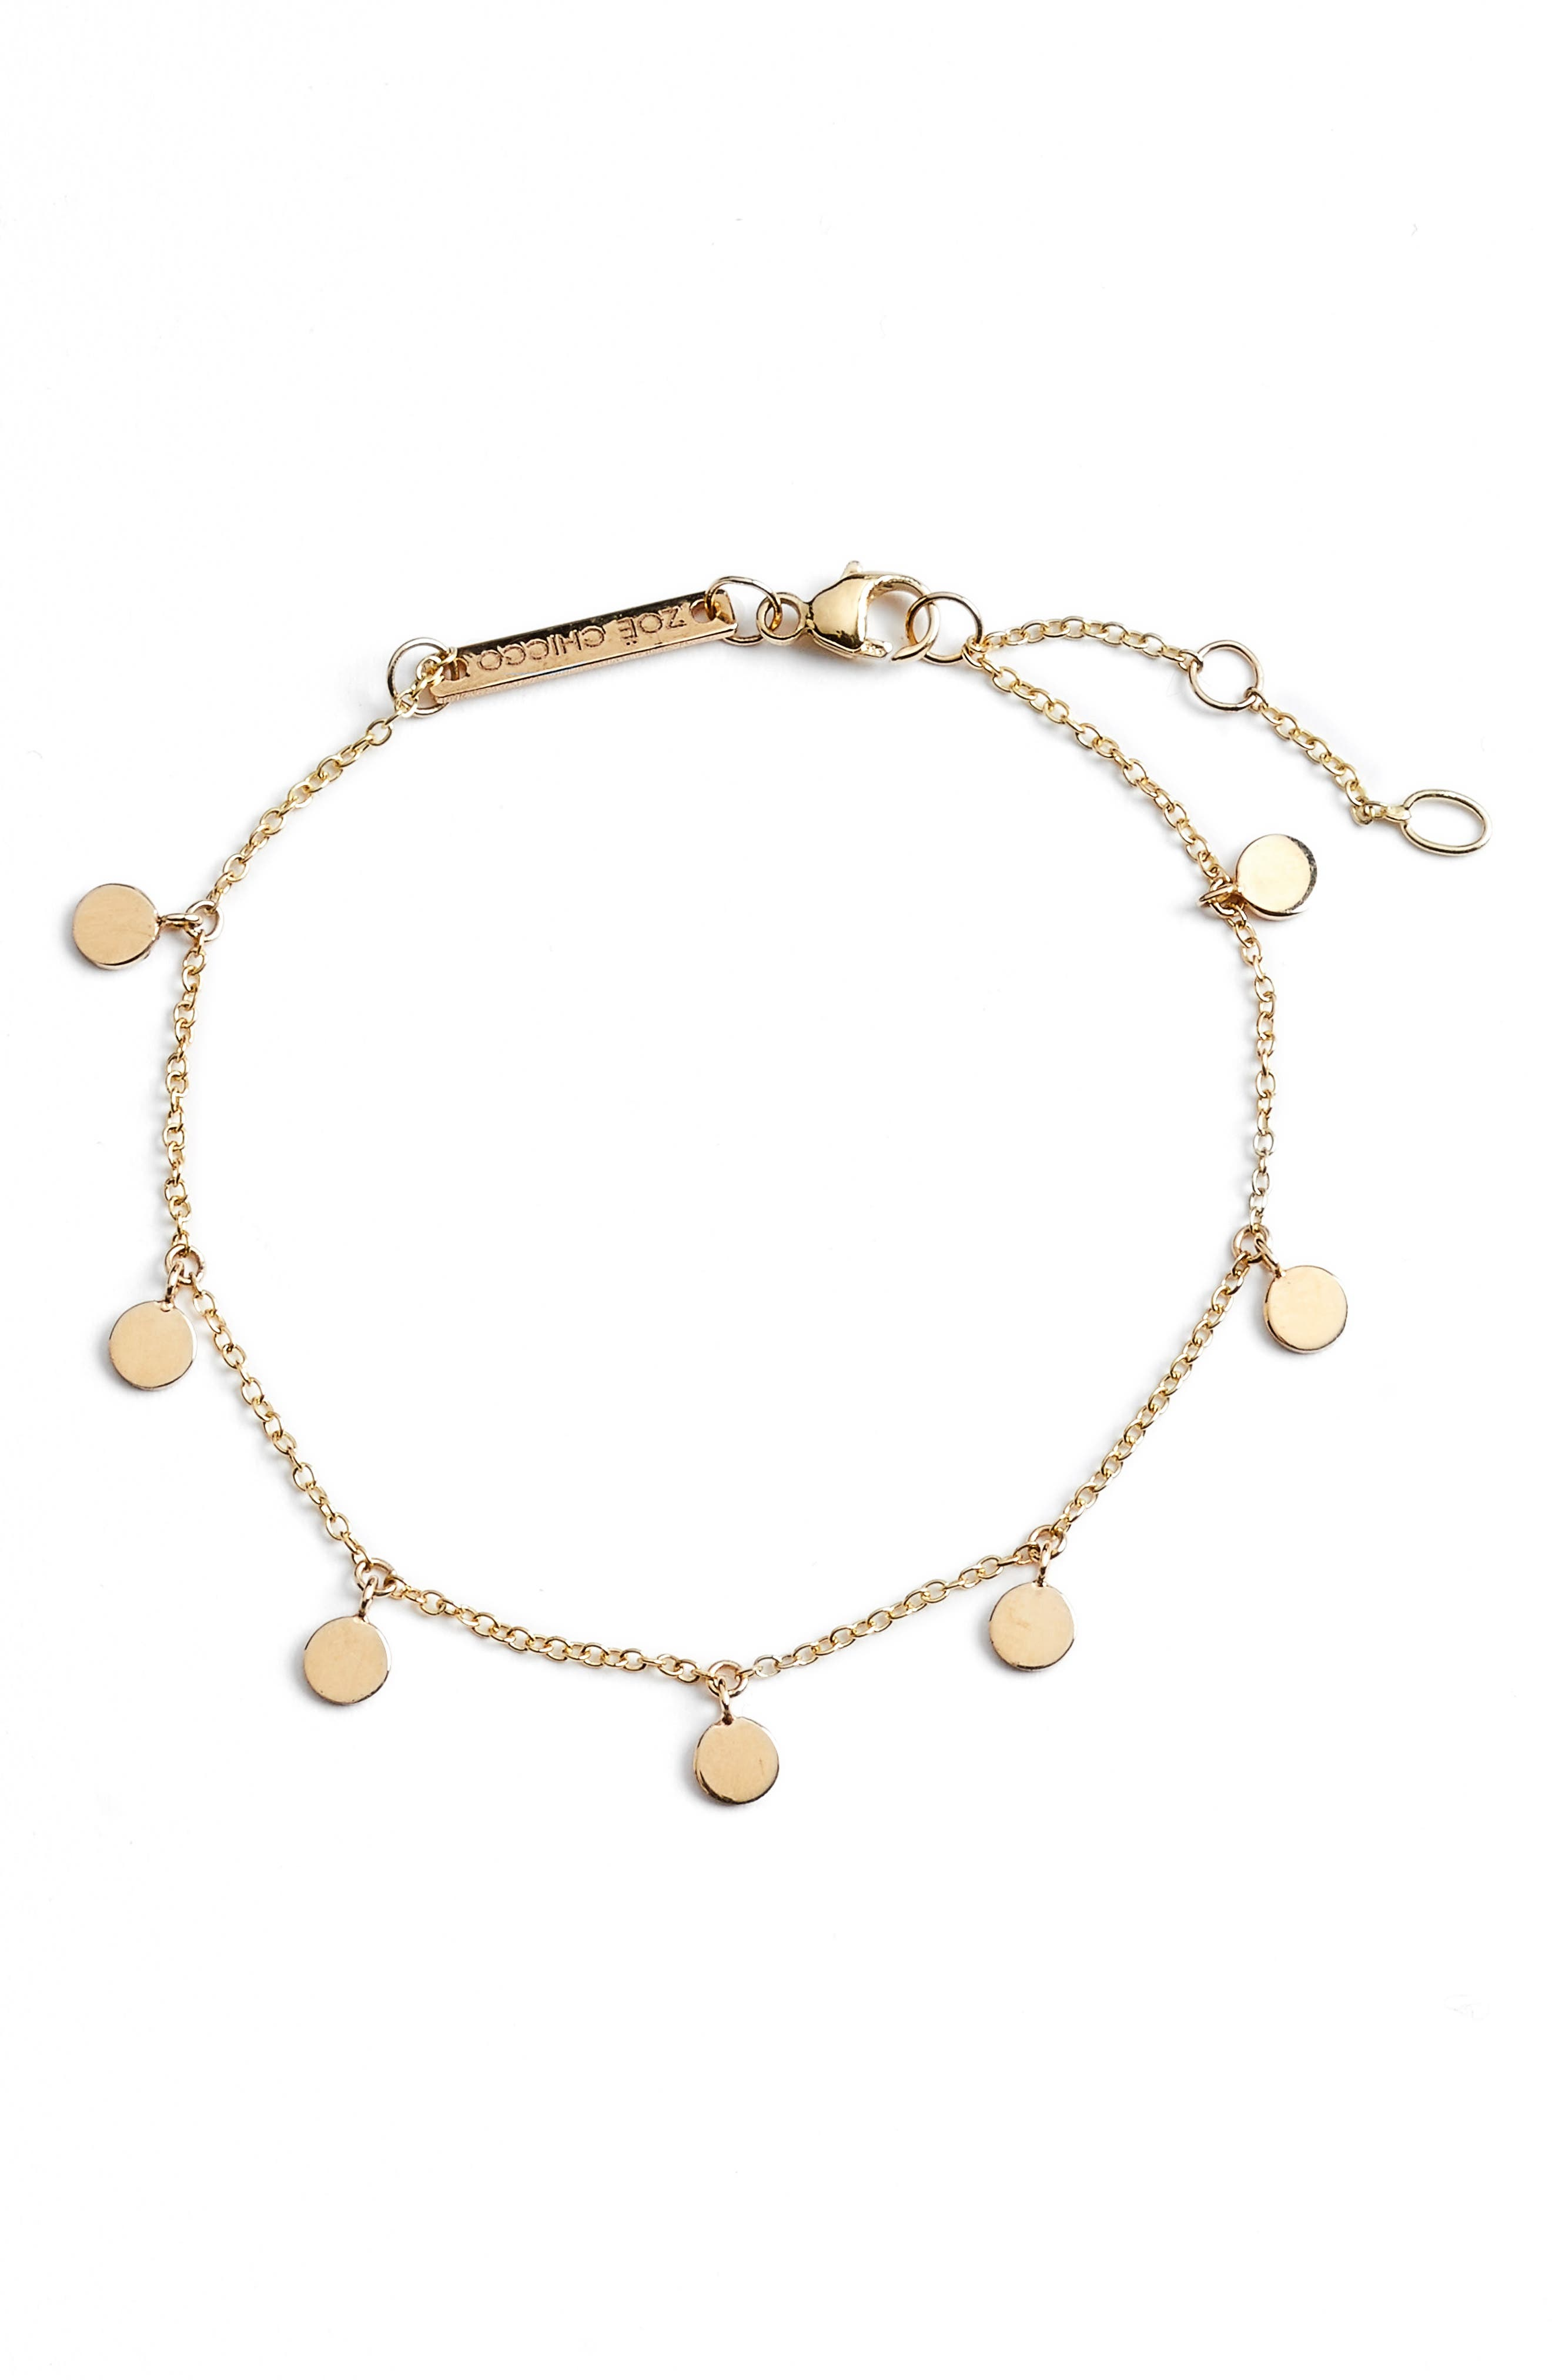 Itty Bitty Round Disc Charm Bracelet,                         Main,                         color, YELLOW GOLD